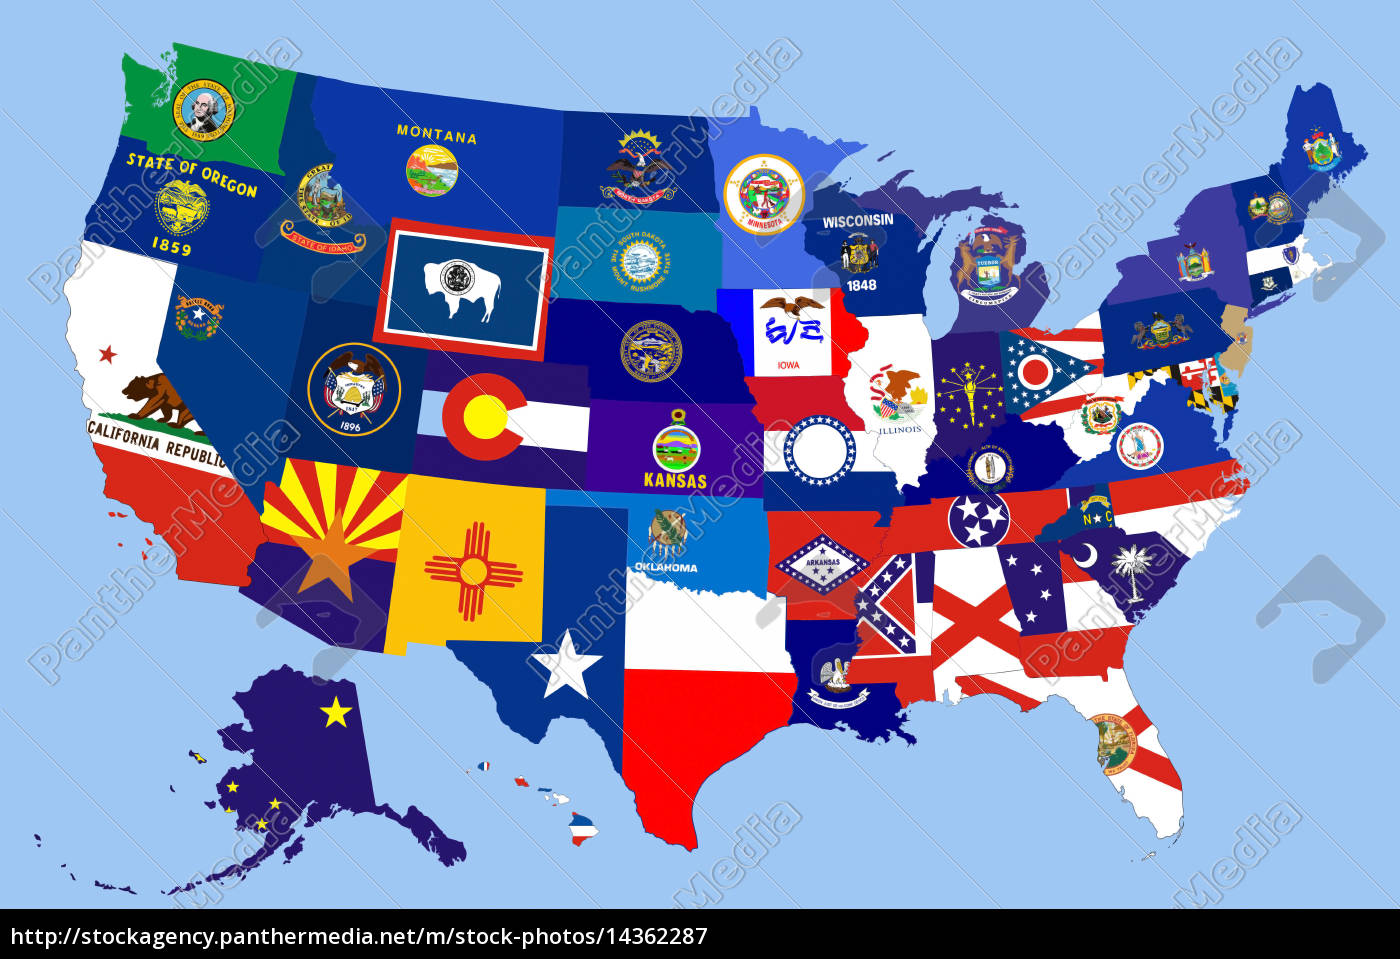 Picture of: Usa States Flag Map Royalty Free Image 14362287 Panthermedia Stock Agency